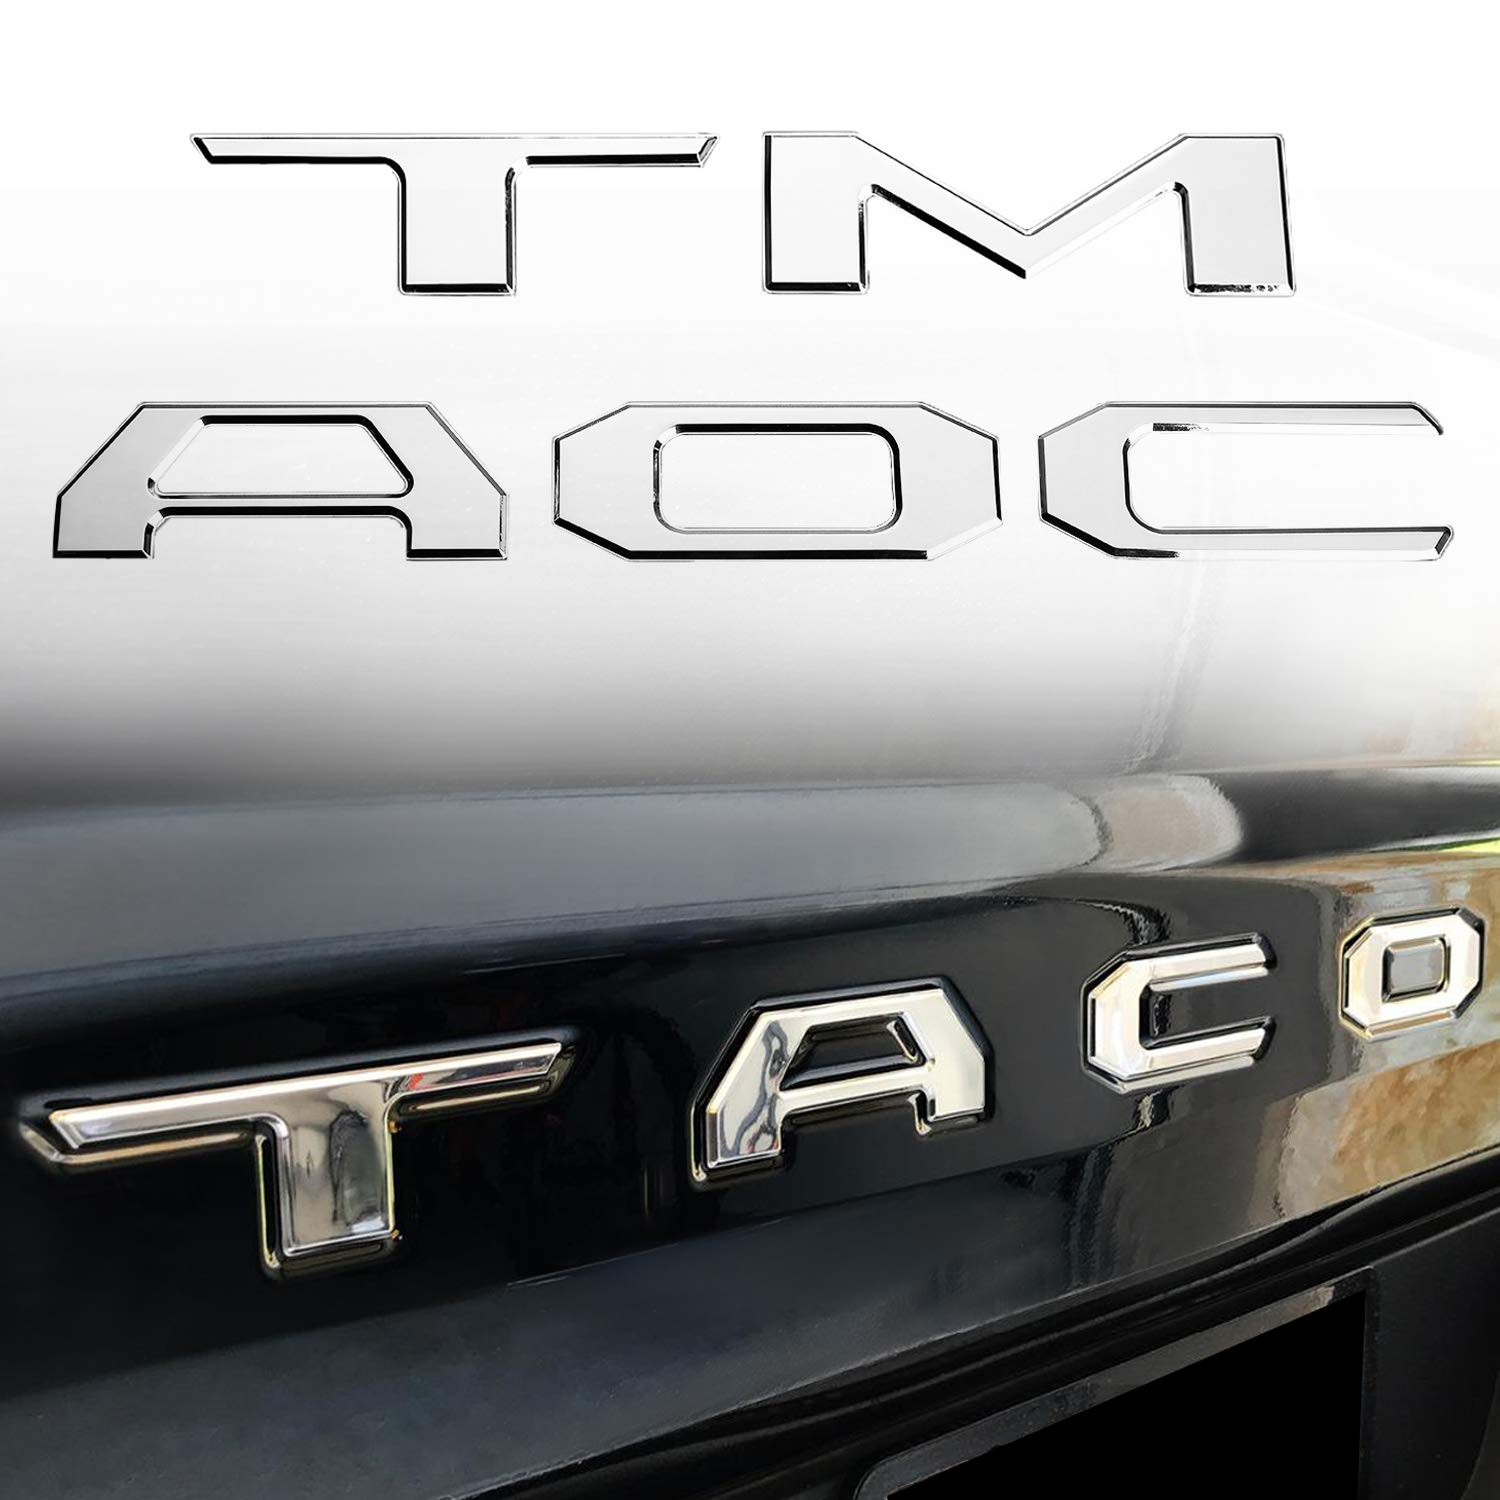 Seven Sparta 3D Raised Tailgate Zinc Alloy Letters for Toyota Tacoma 2016 2017 2018 Metal Inserts (Matte Black)